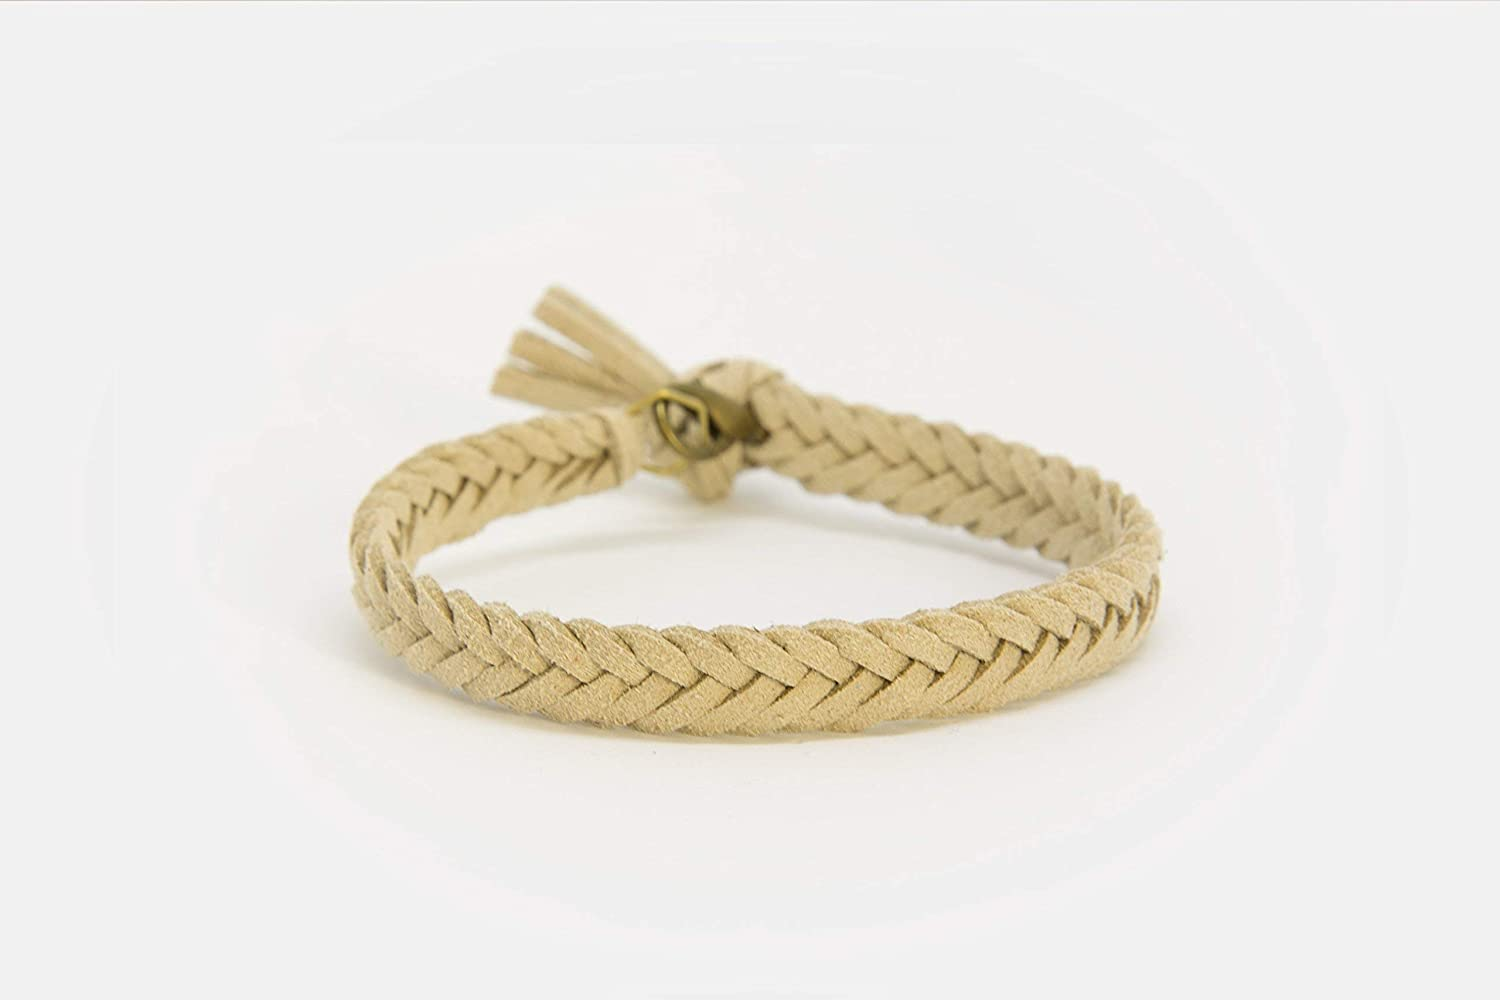 LoilJ Essential Oil Diffusing Bracelet - Thick Braided 8in Oat Beige